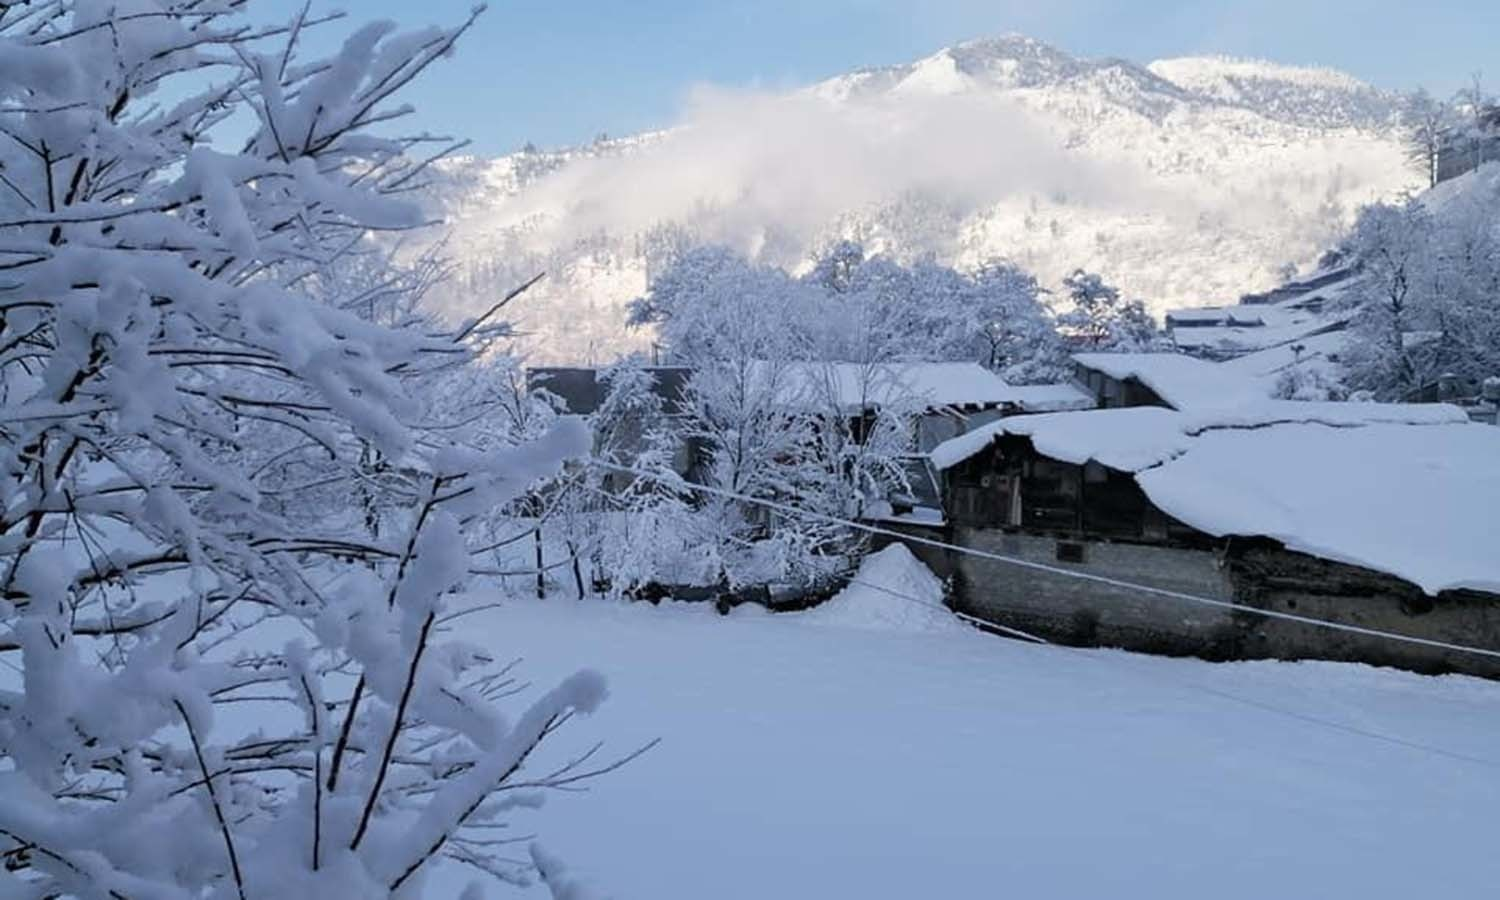 Days of snow accumulated over roofs and treetops in Shangla. — Umar Bacha